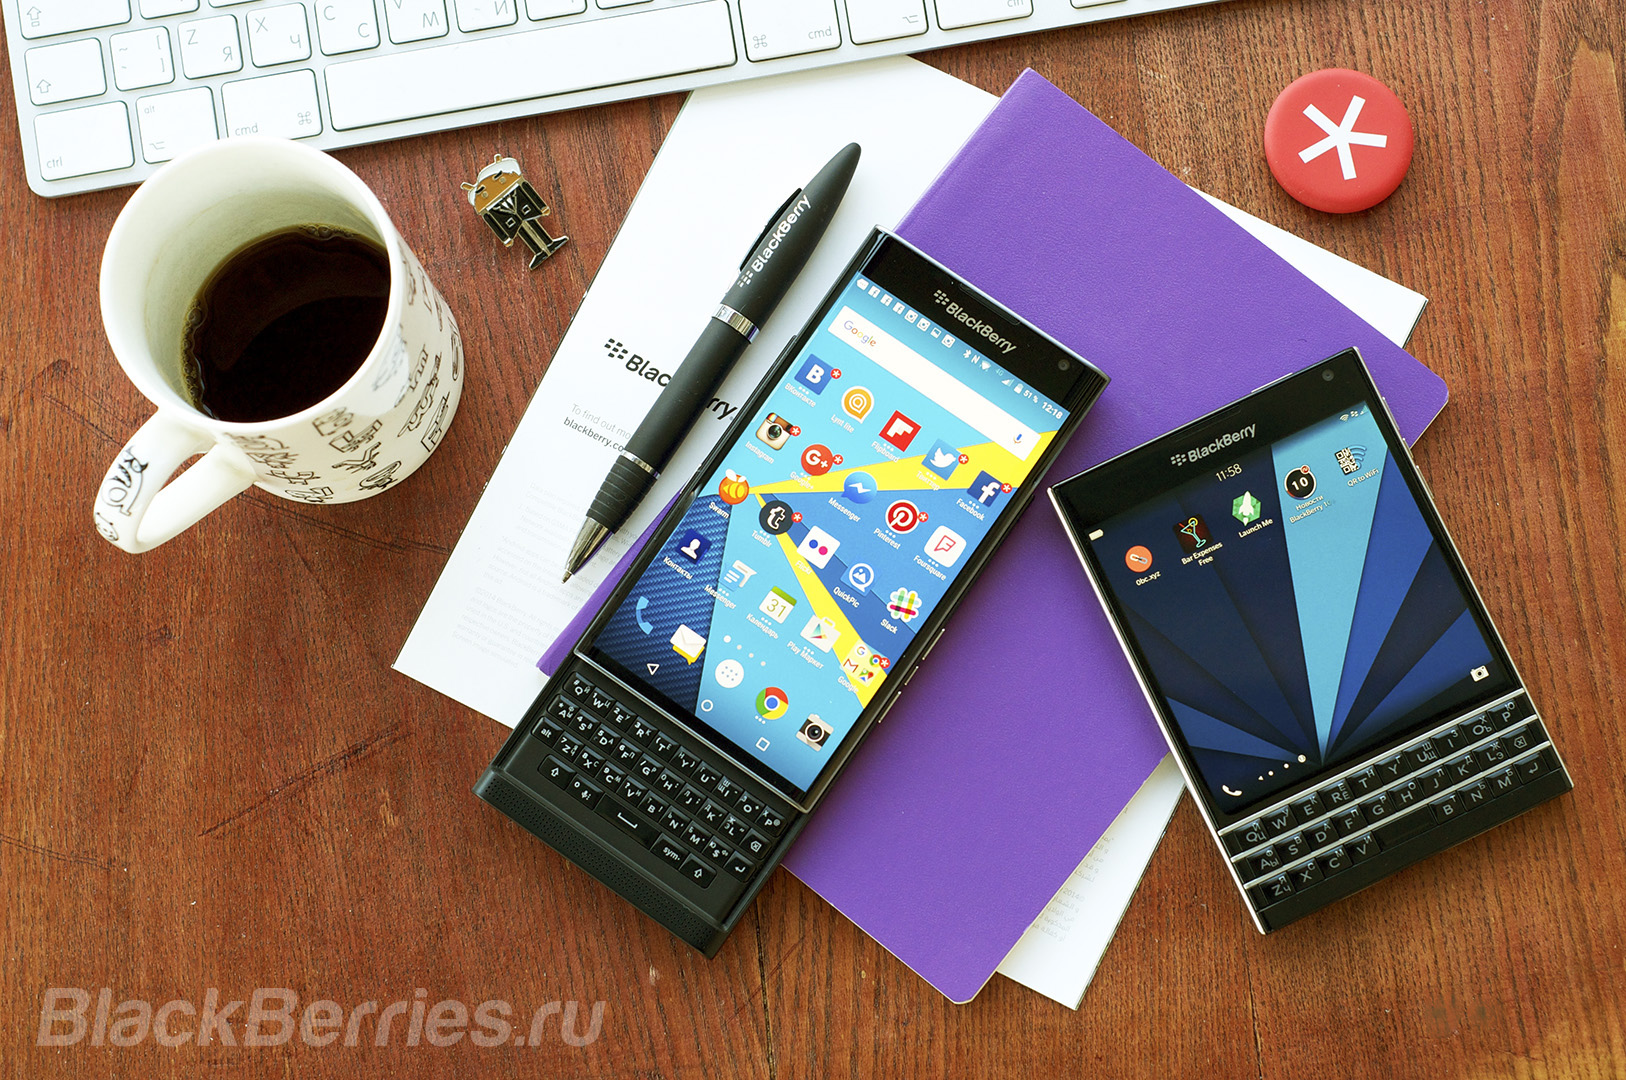 BlackBerry-Apps-29-11-6